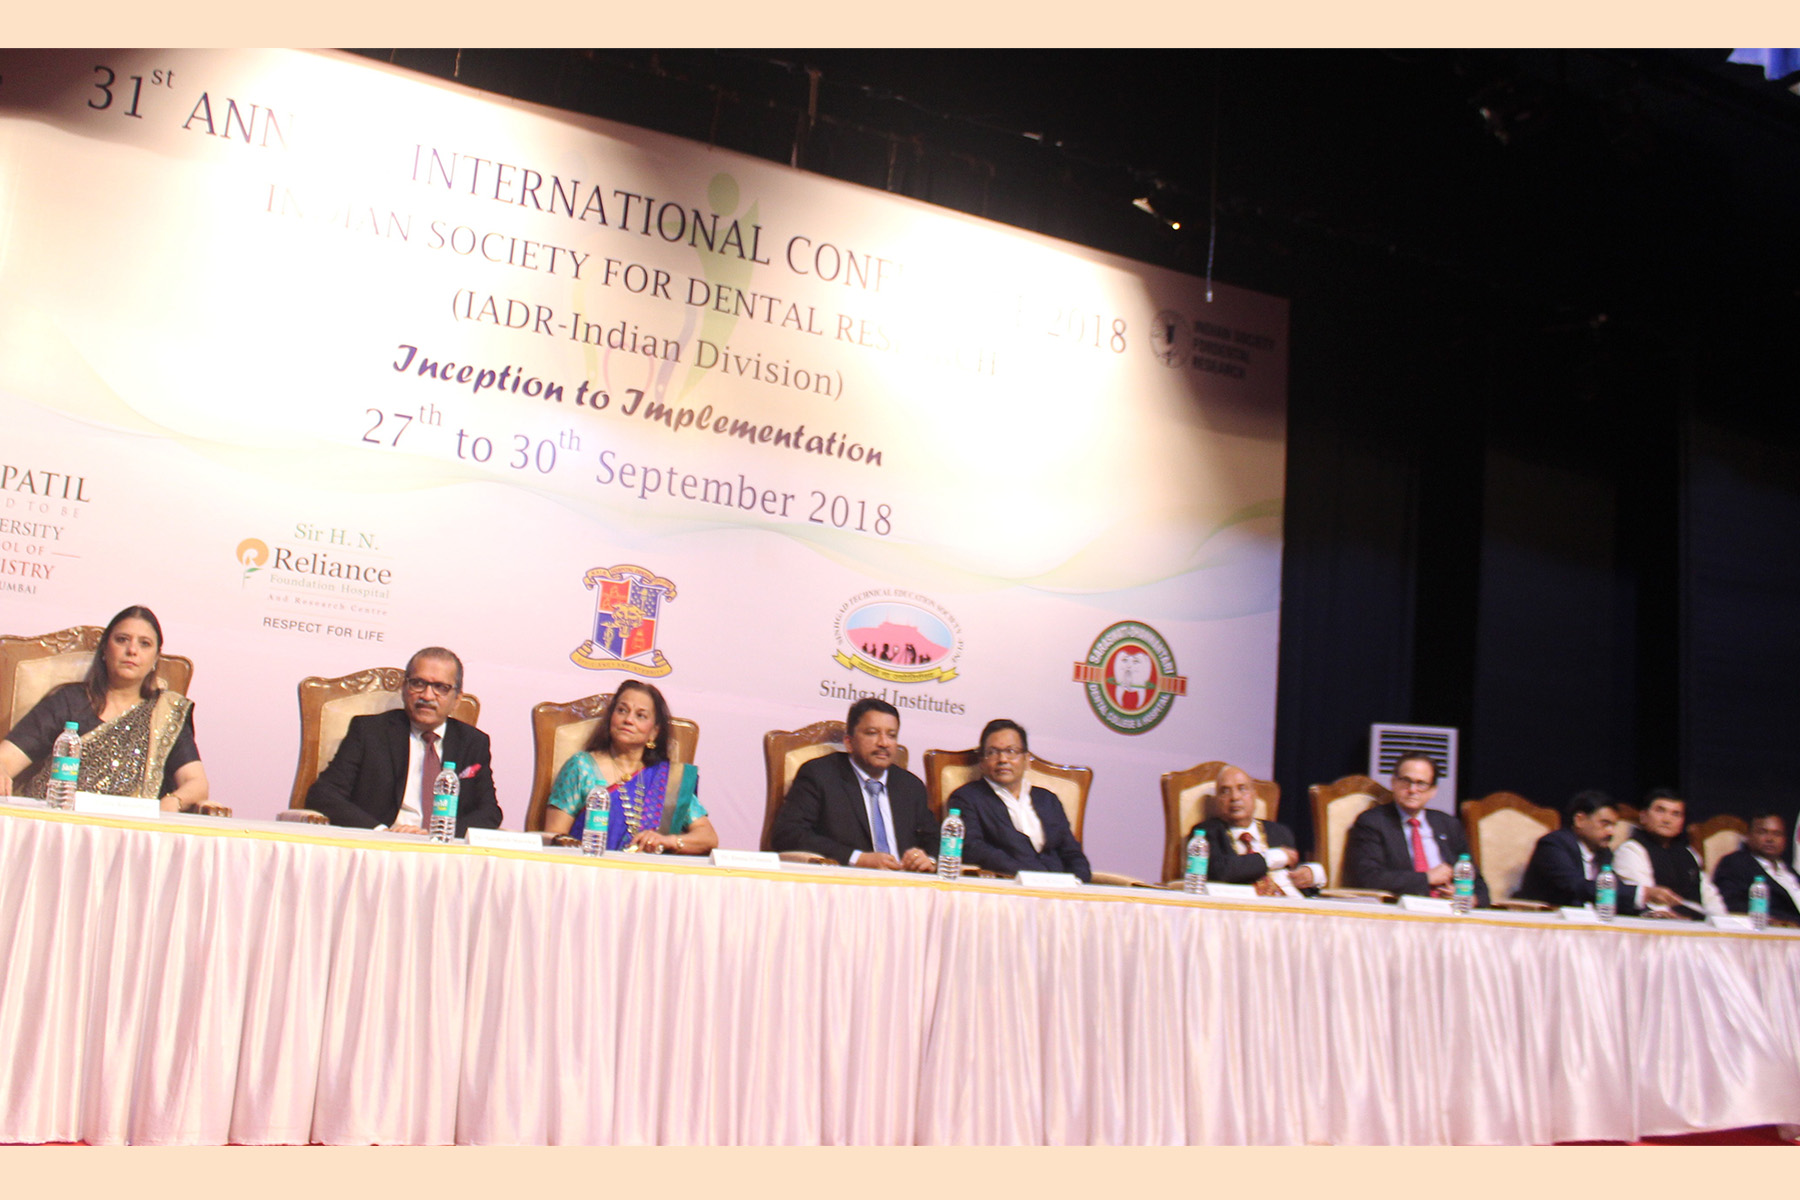 31st Indian Society for Dental Research-International Association for Dental Research Annual Conference